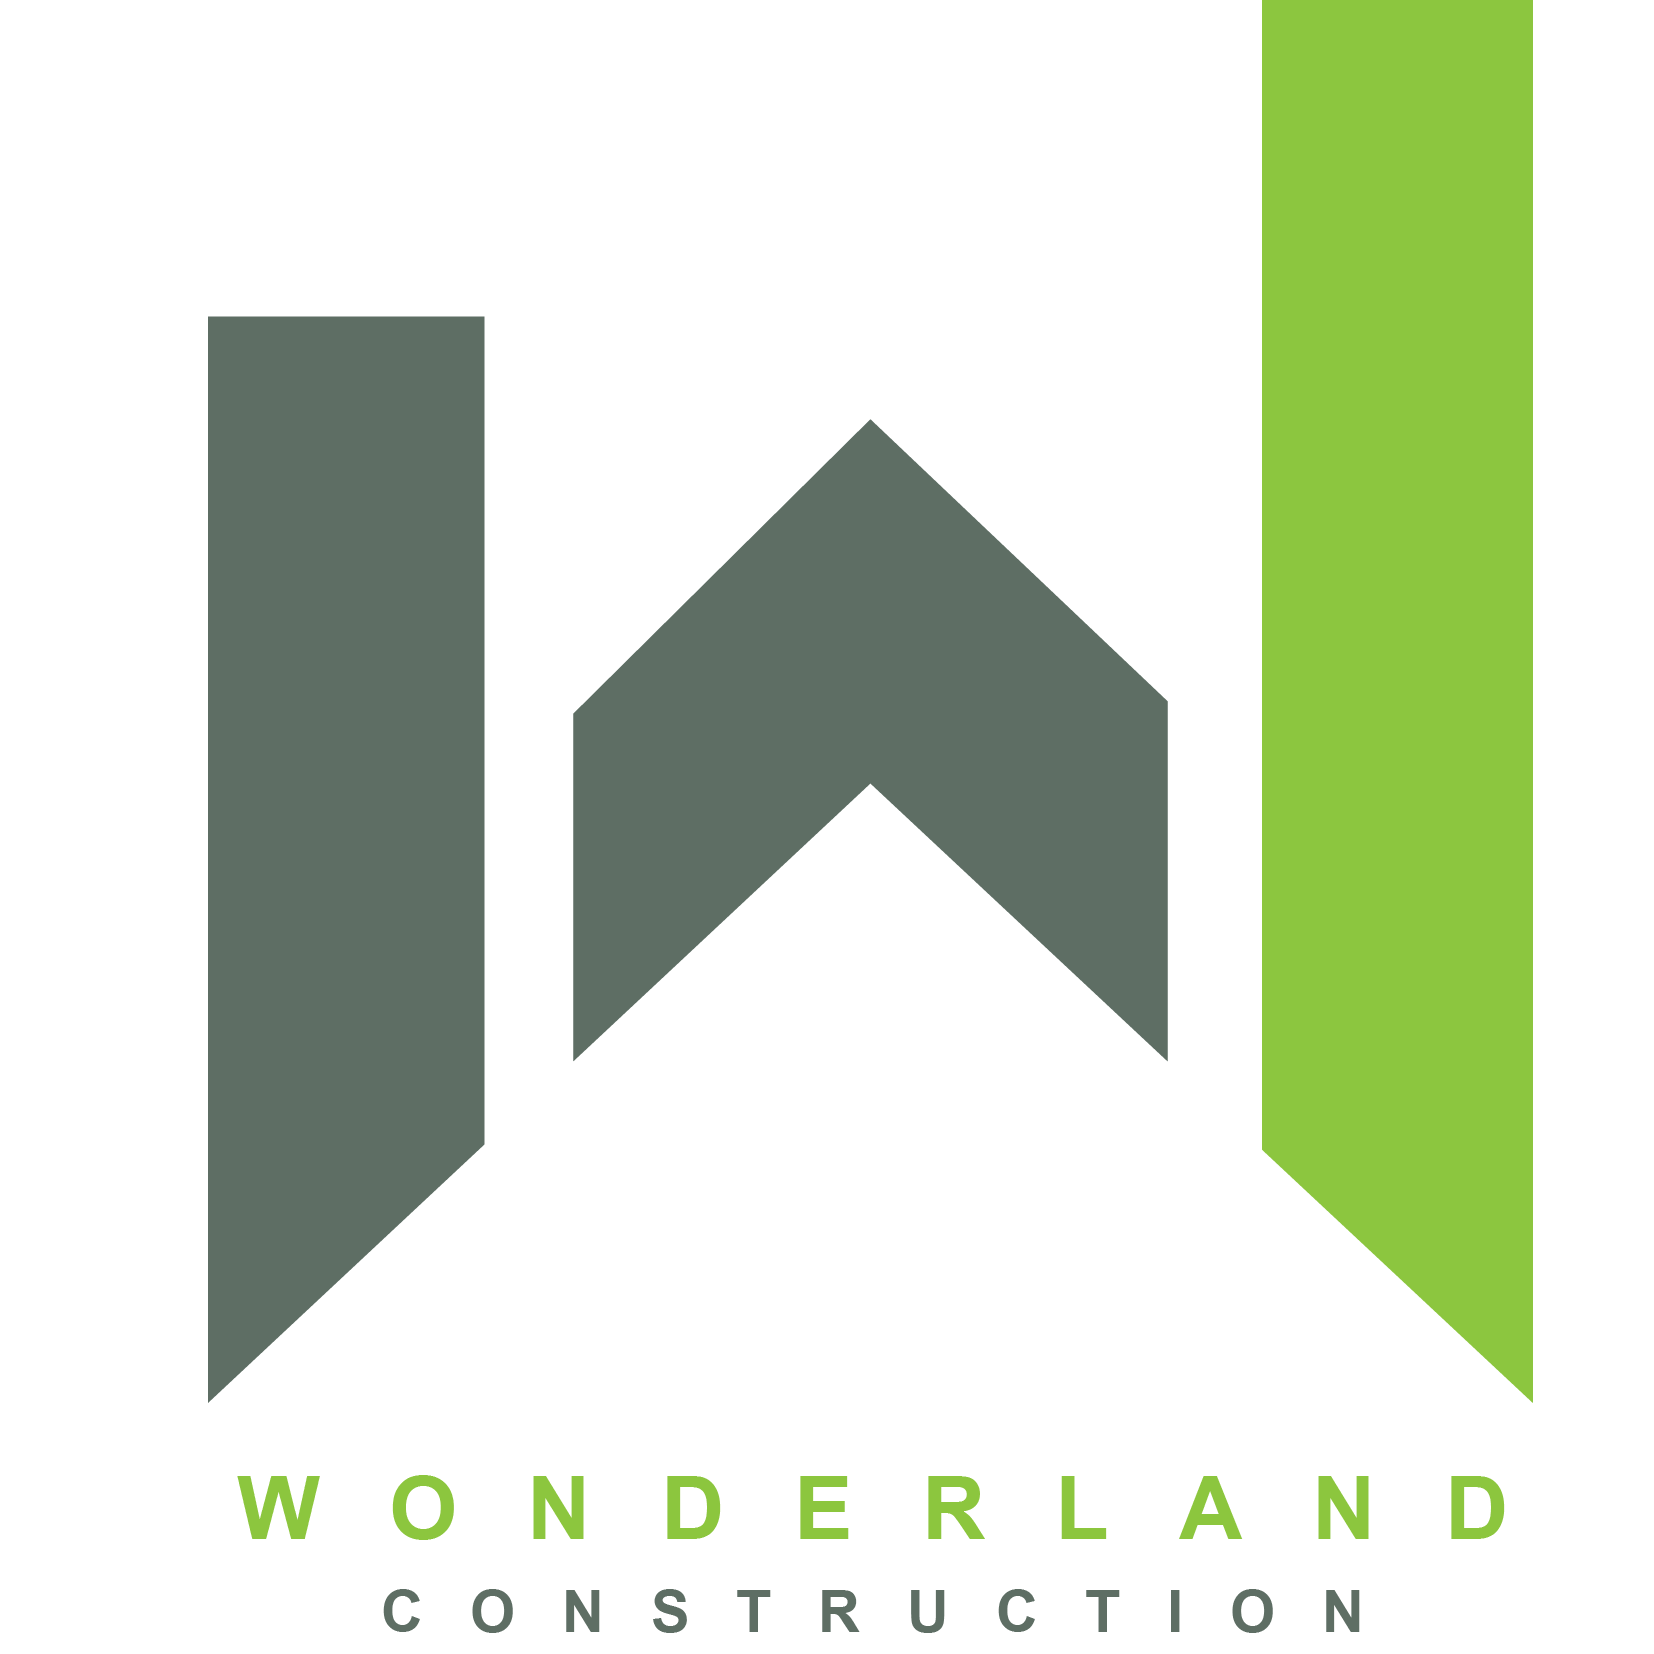 WONDERLAND CONSTRUCTION GROUP LIMITED